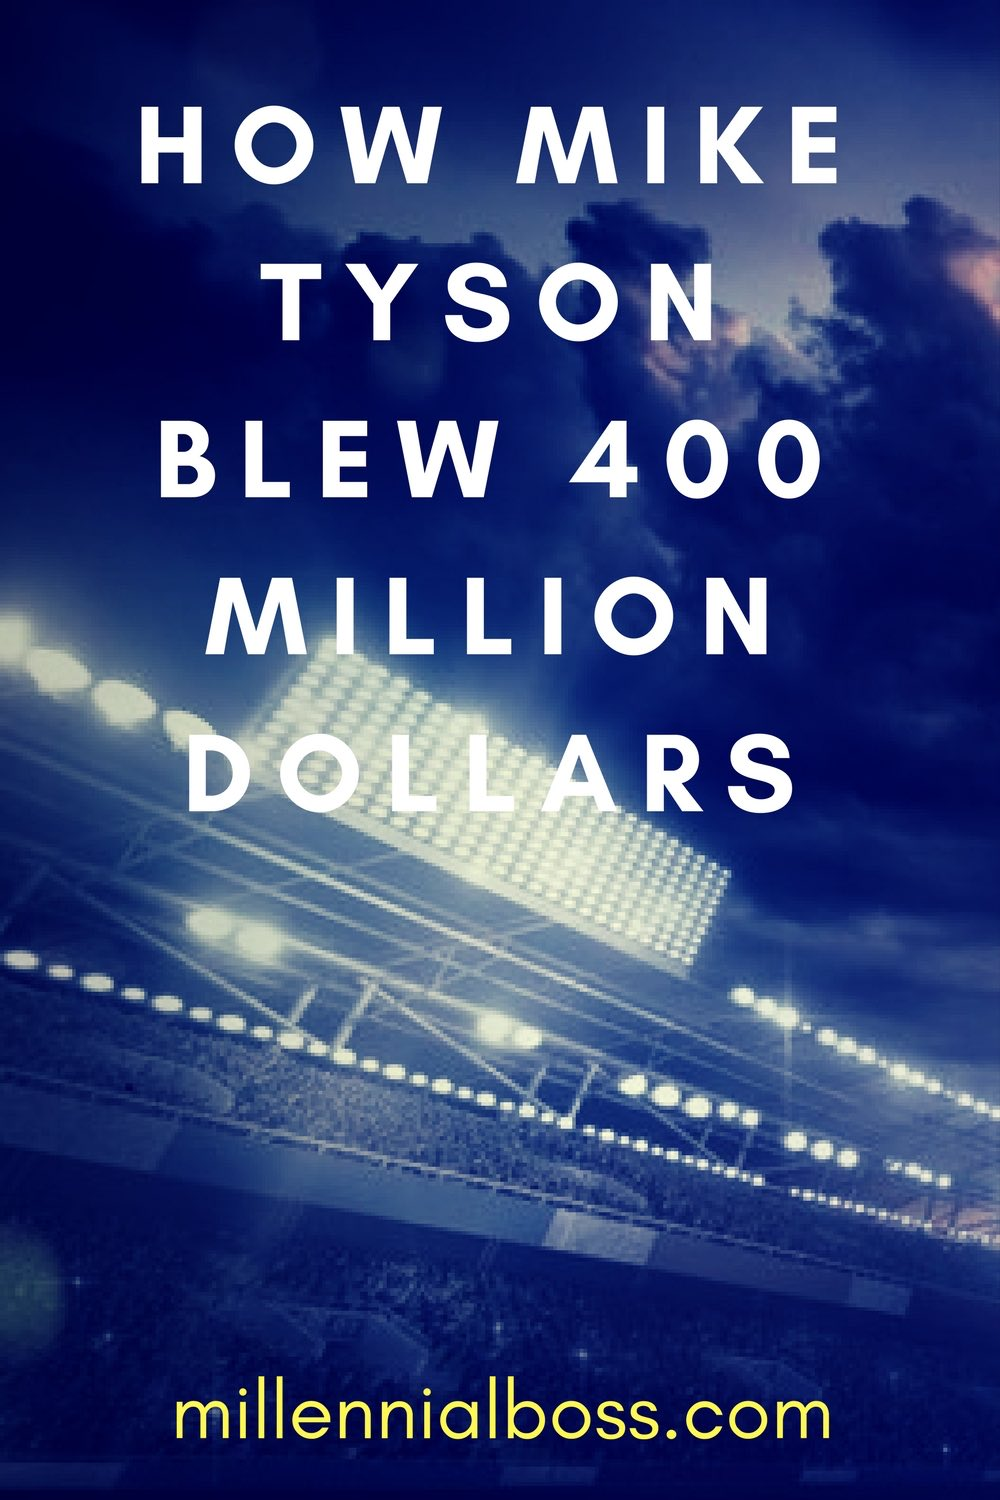 How athletes blow their money | How Mike Tyson and other athletes blow their fortunes